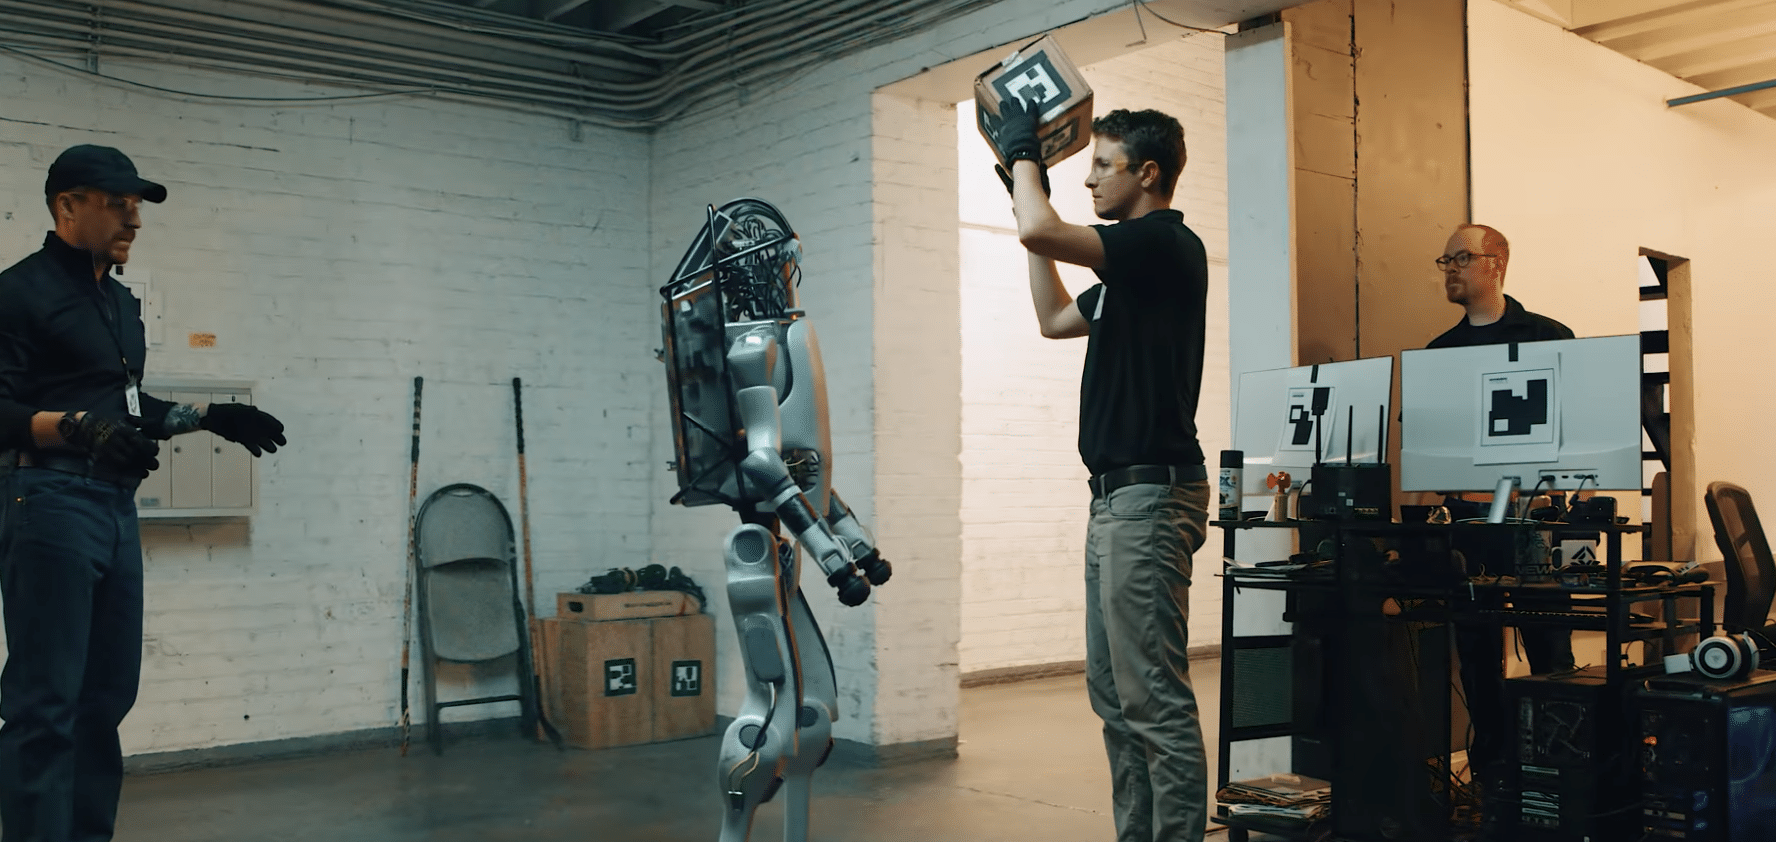 dark futures film club – robots now fight back